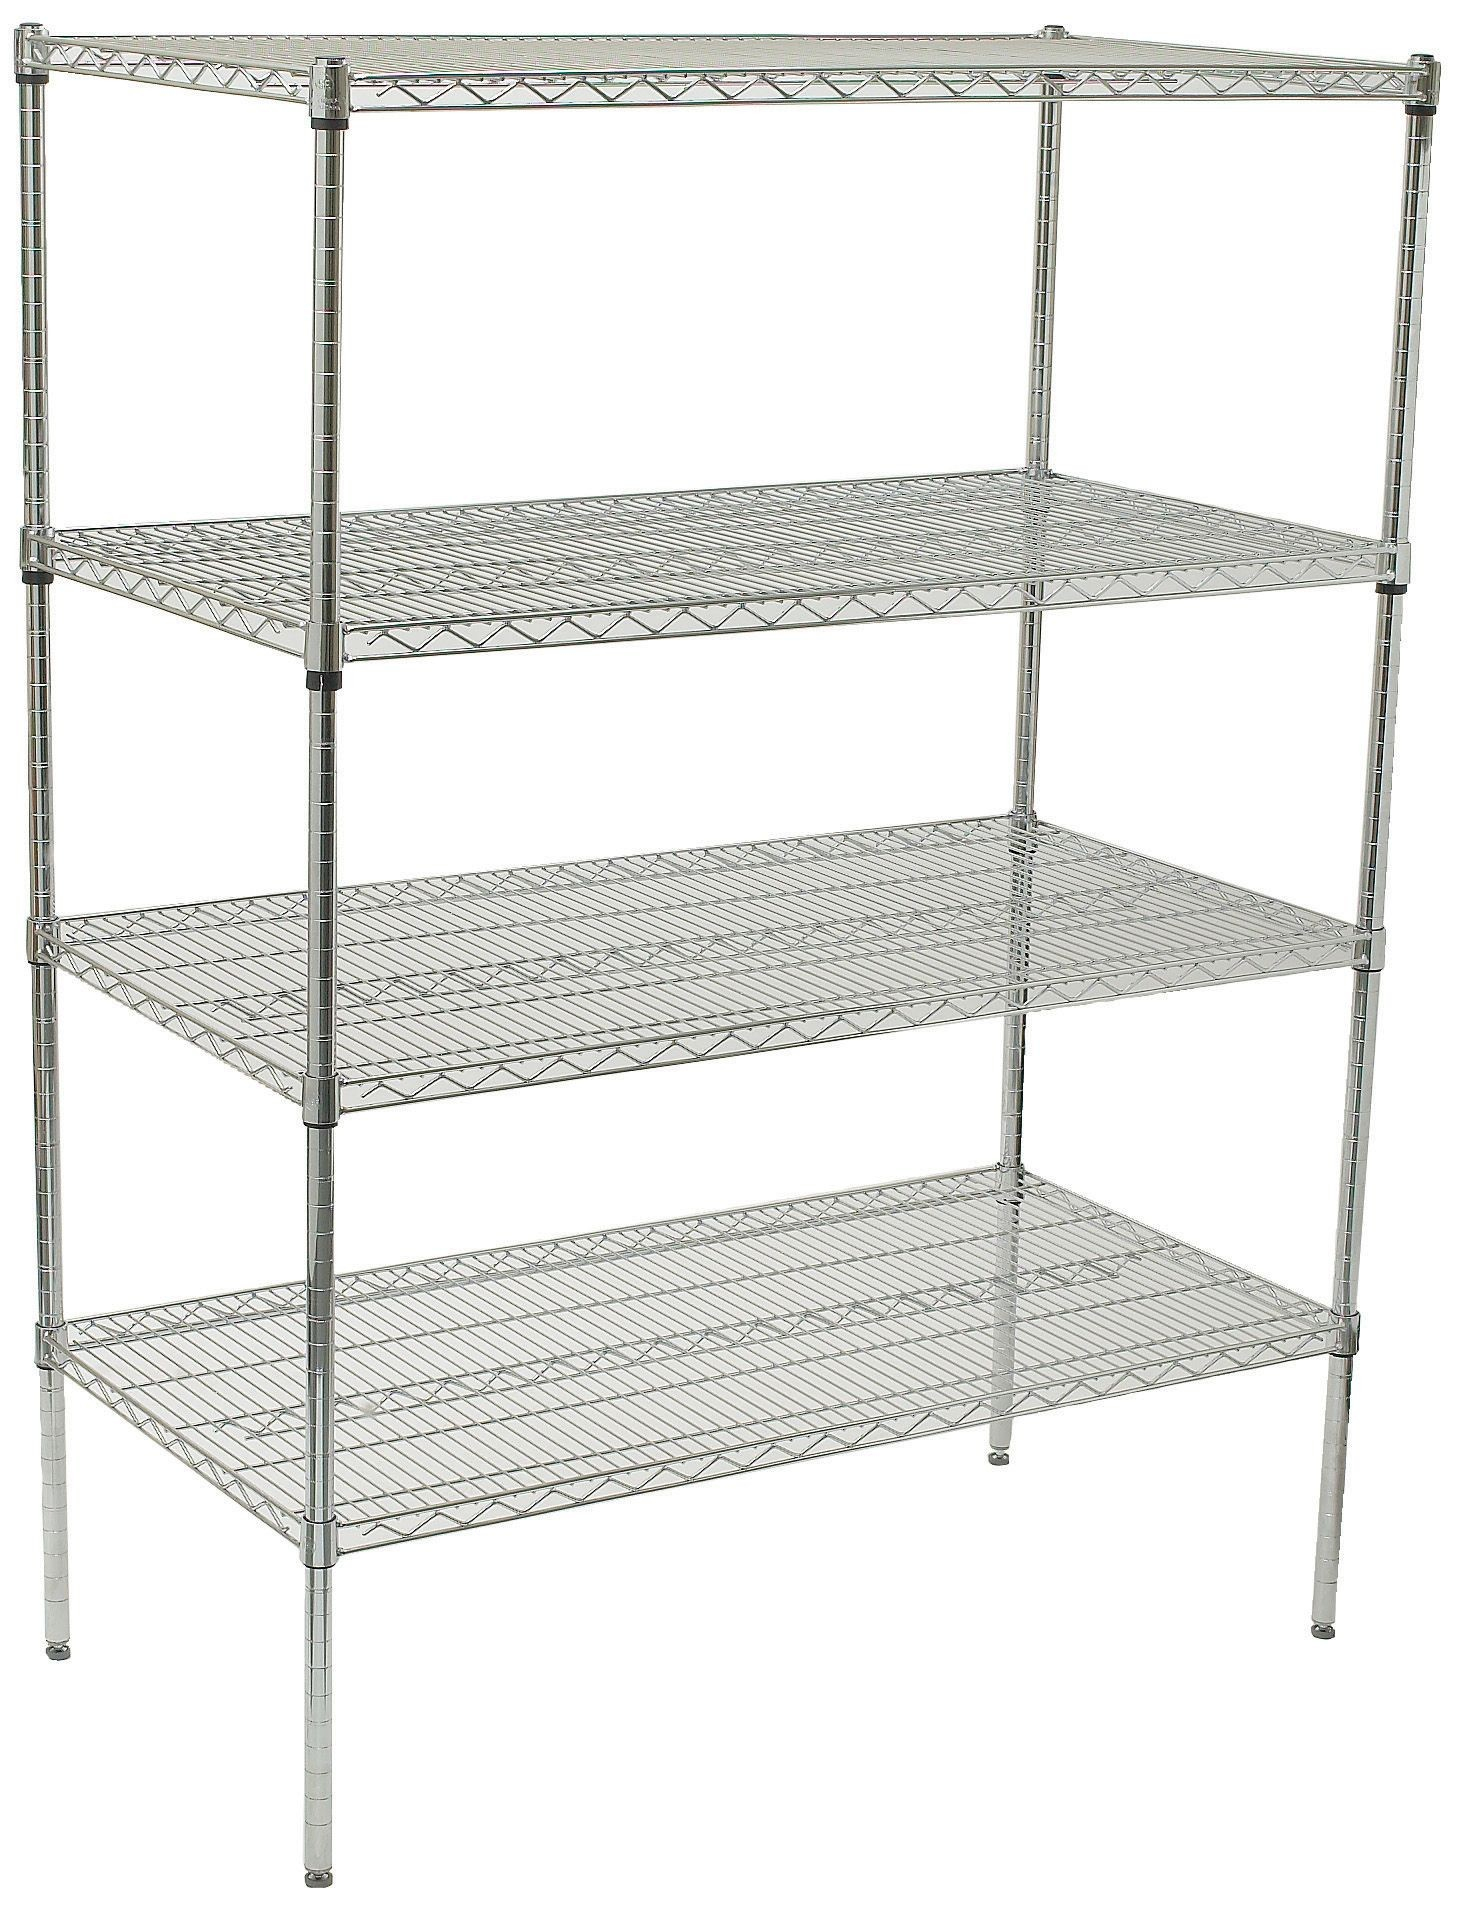 """Winco VCS-2448 Chrome Plated 4-Tier Wire Shelving Set, 24"""" x 48"""" x 72"""""""